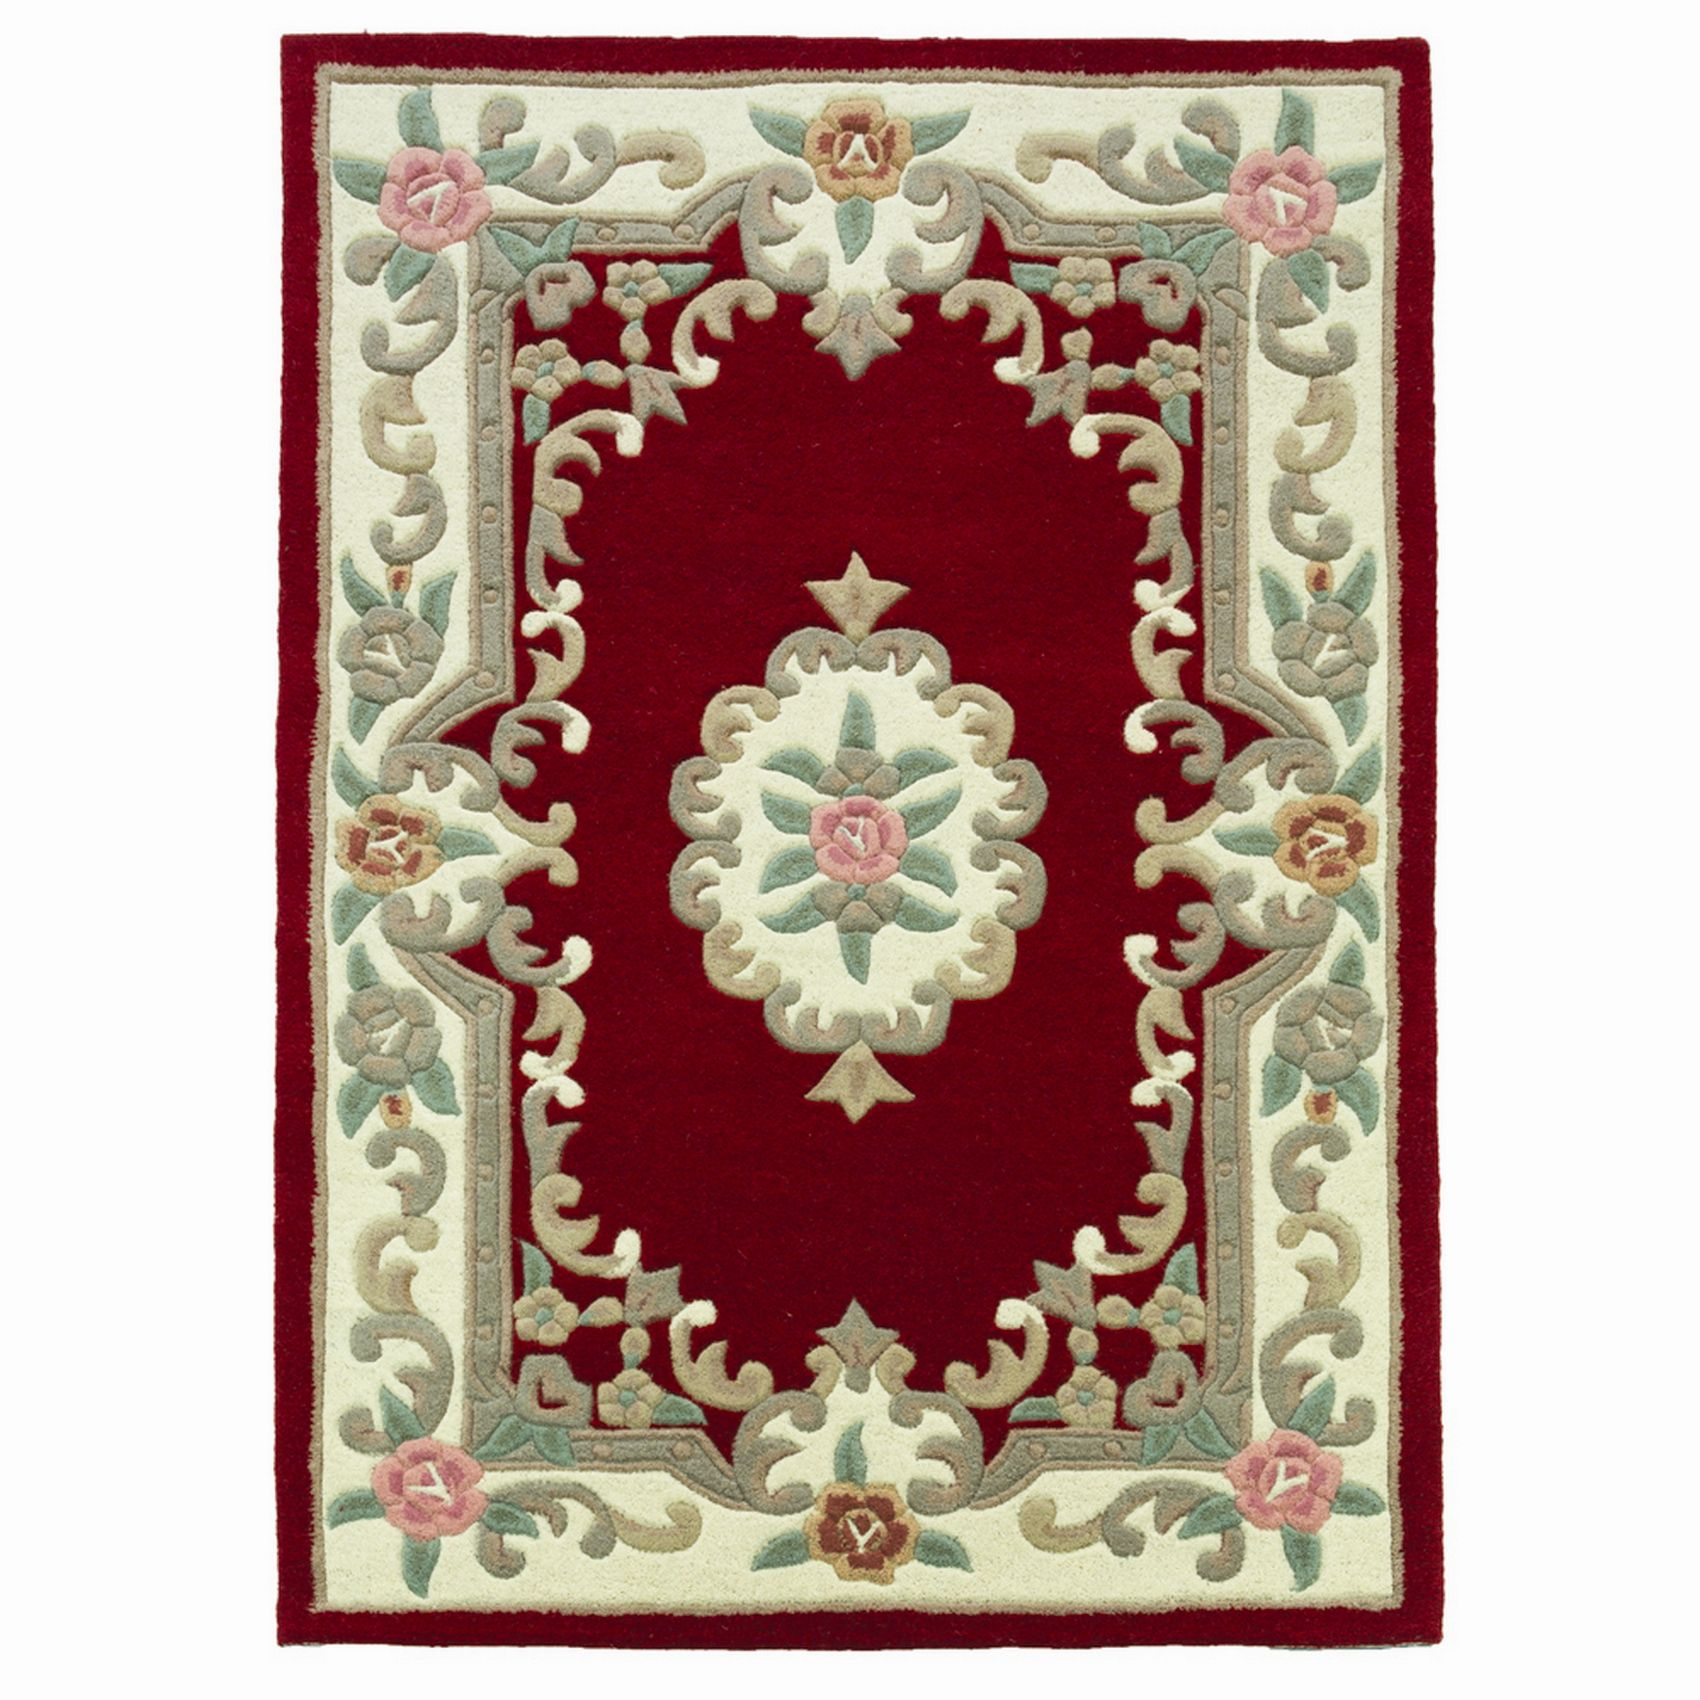 Small Large Pink Rug Cerise Runners Sparkle Modern Thick: Luxury Rugs 100% Wool Thick Hard Wearing Small Large